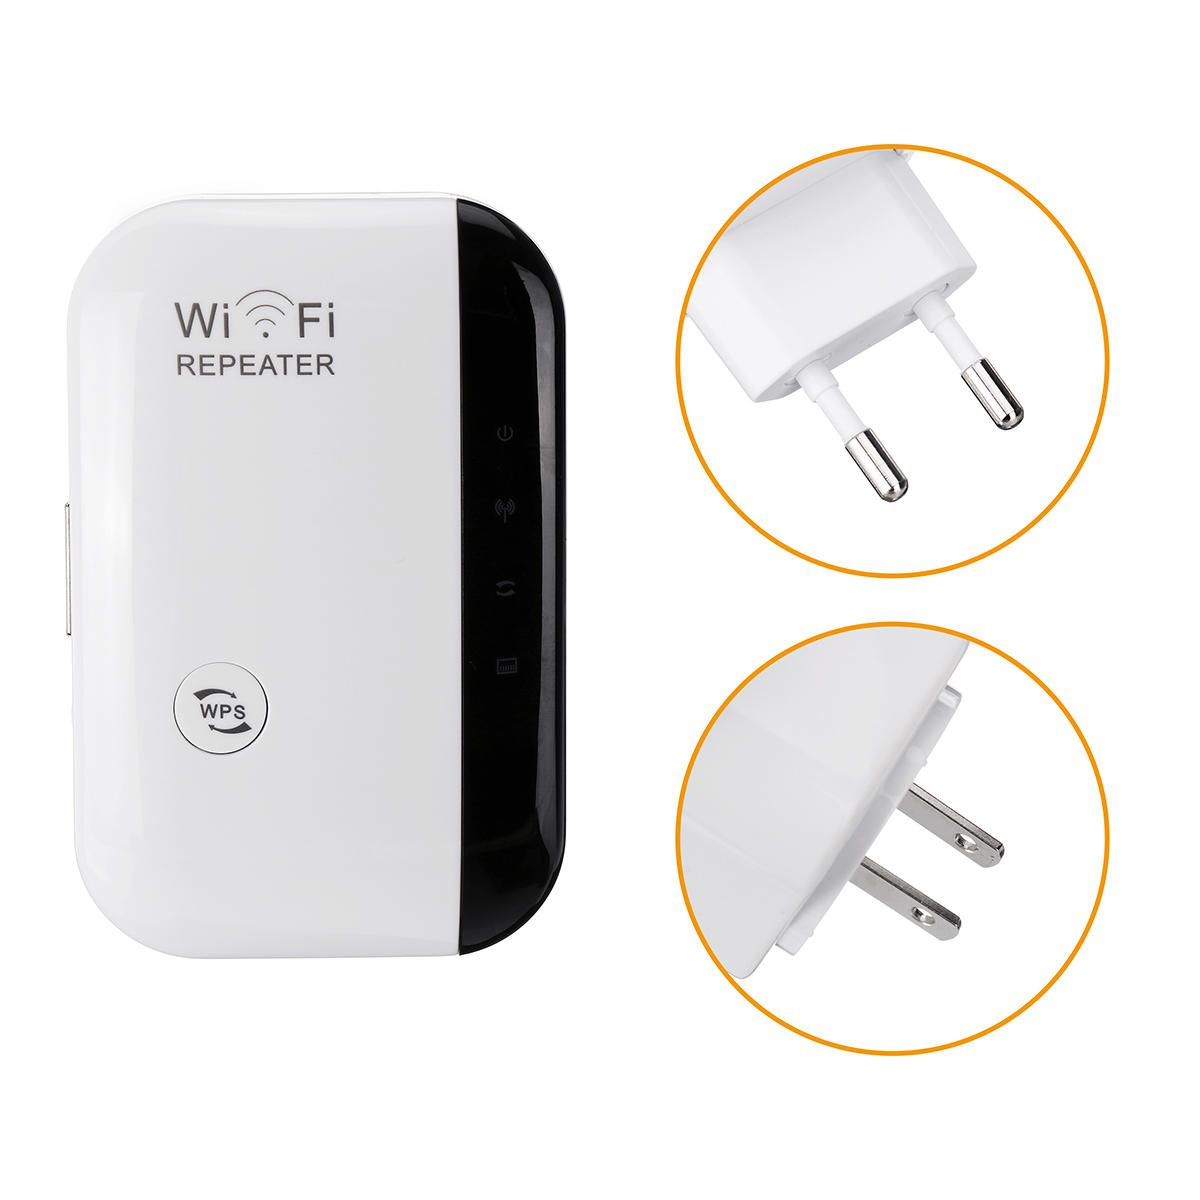 HPE US$10.99 300Mbps Wireless-N Wifi Repeater 2.4G AP Router Signal Booster Extender Amplifier WiFi Extender Repeater US/EU/UK/AU Plug